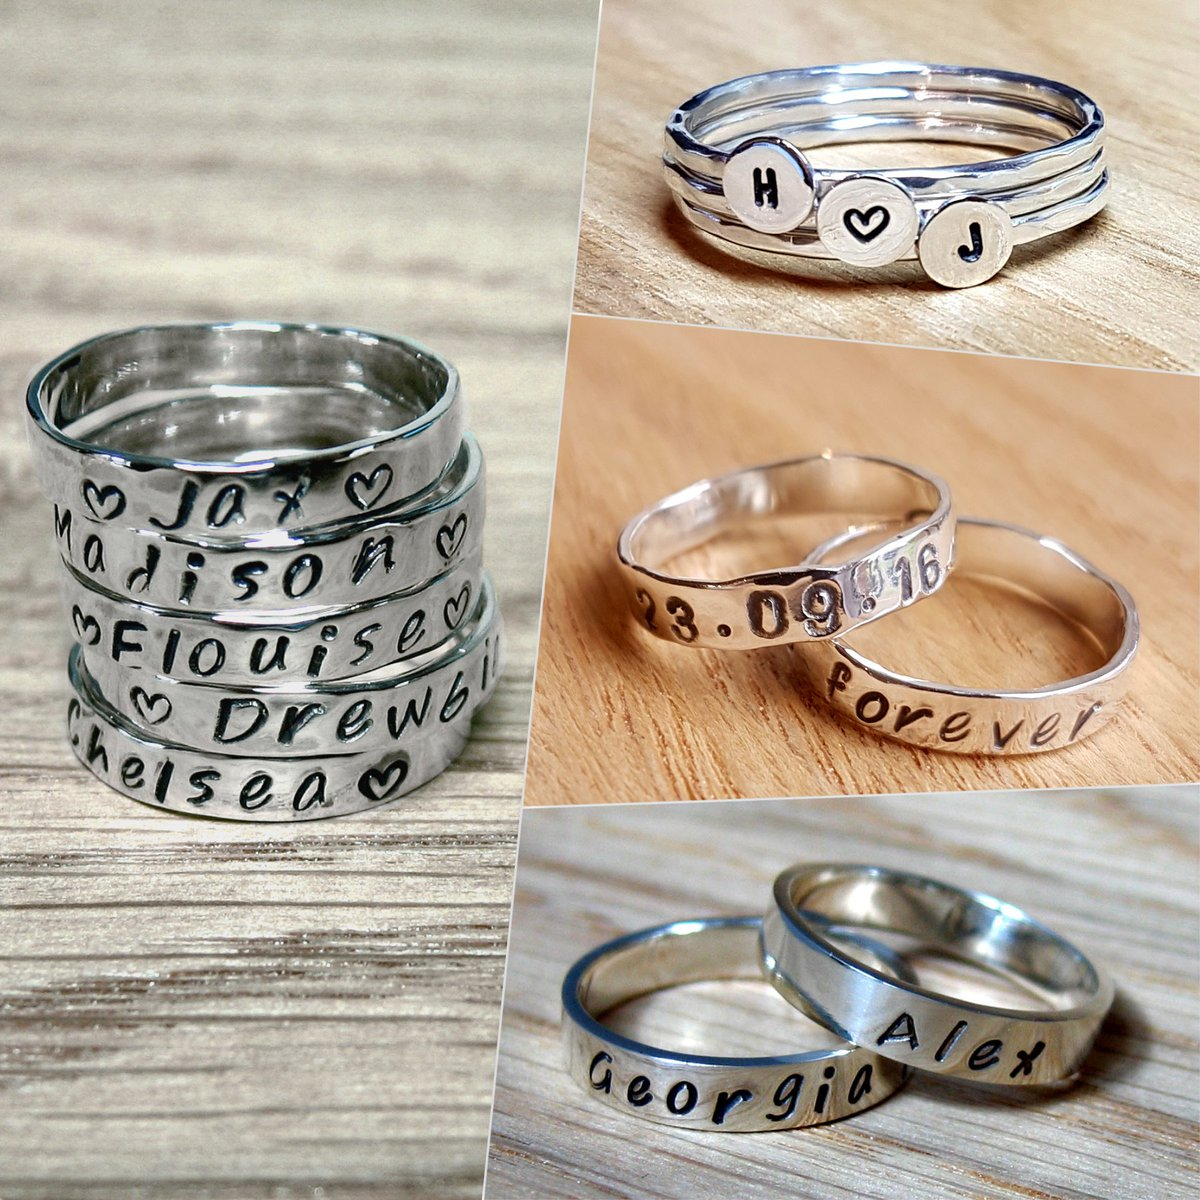 Add &#39;Your Story&#39; to these Sterling #Silver Story #rings  https:// mooi.biz/uandme_rings.h tml &nbsp; …  #earlybiz #handmade #personalised #xmas #giftsforher #gifts<br>http://pic.twitter.com/XFBkQifpfW